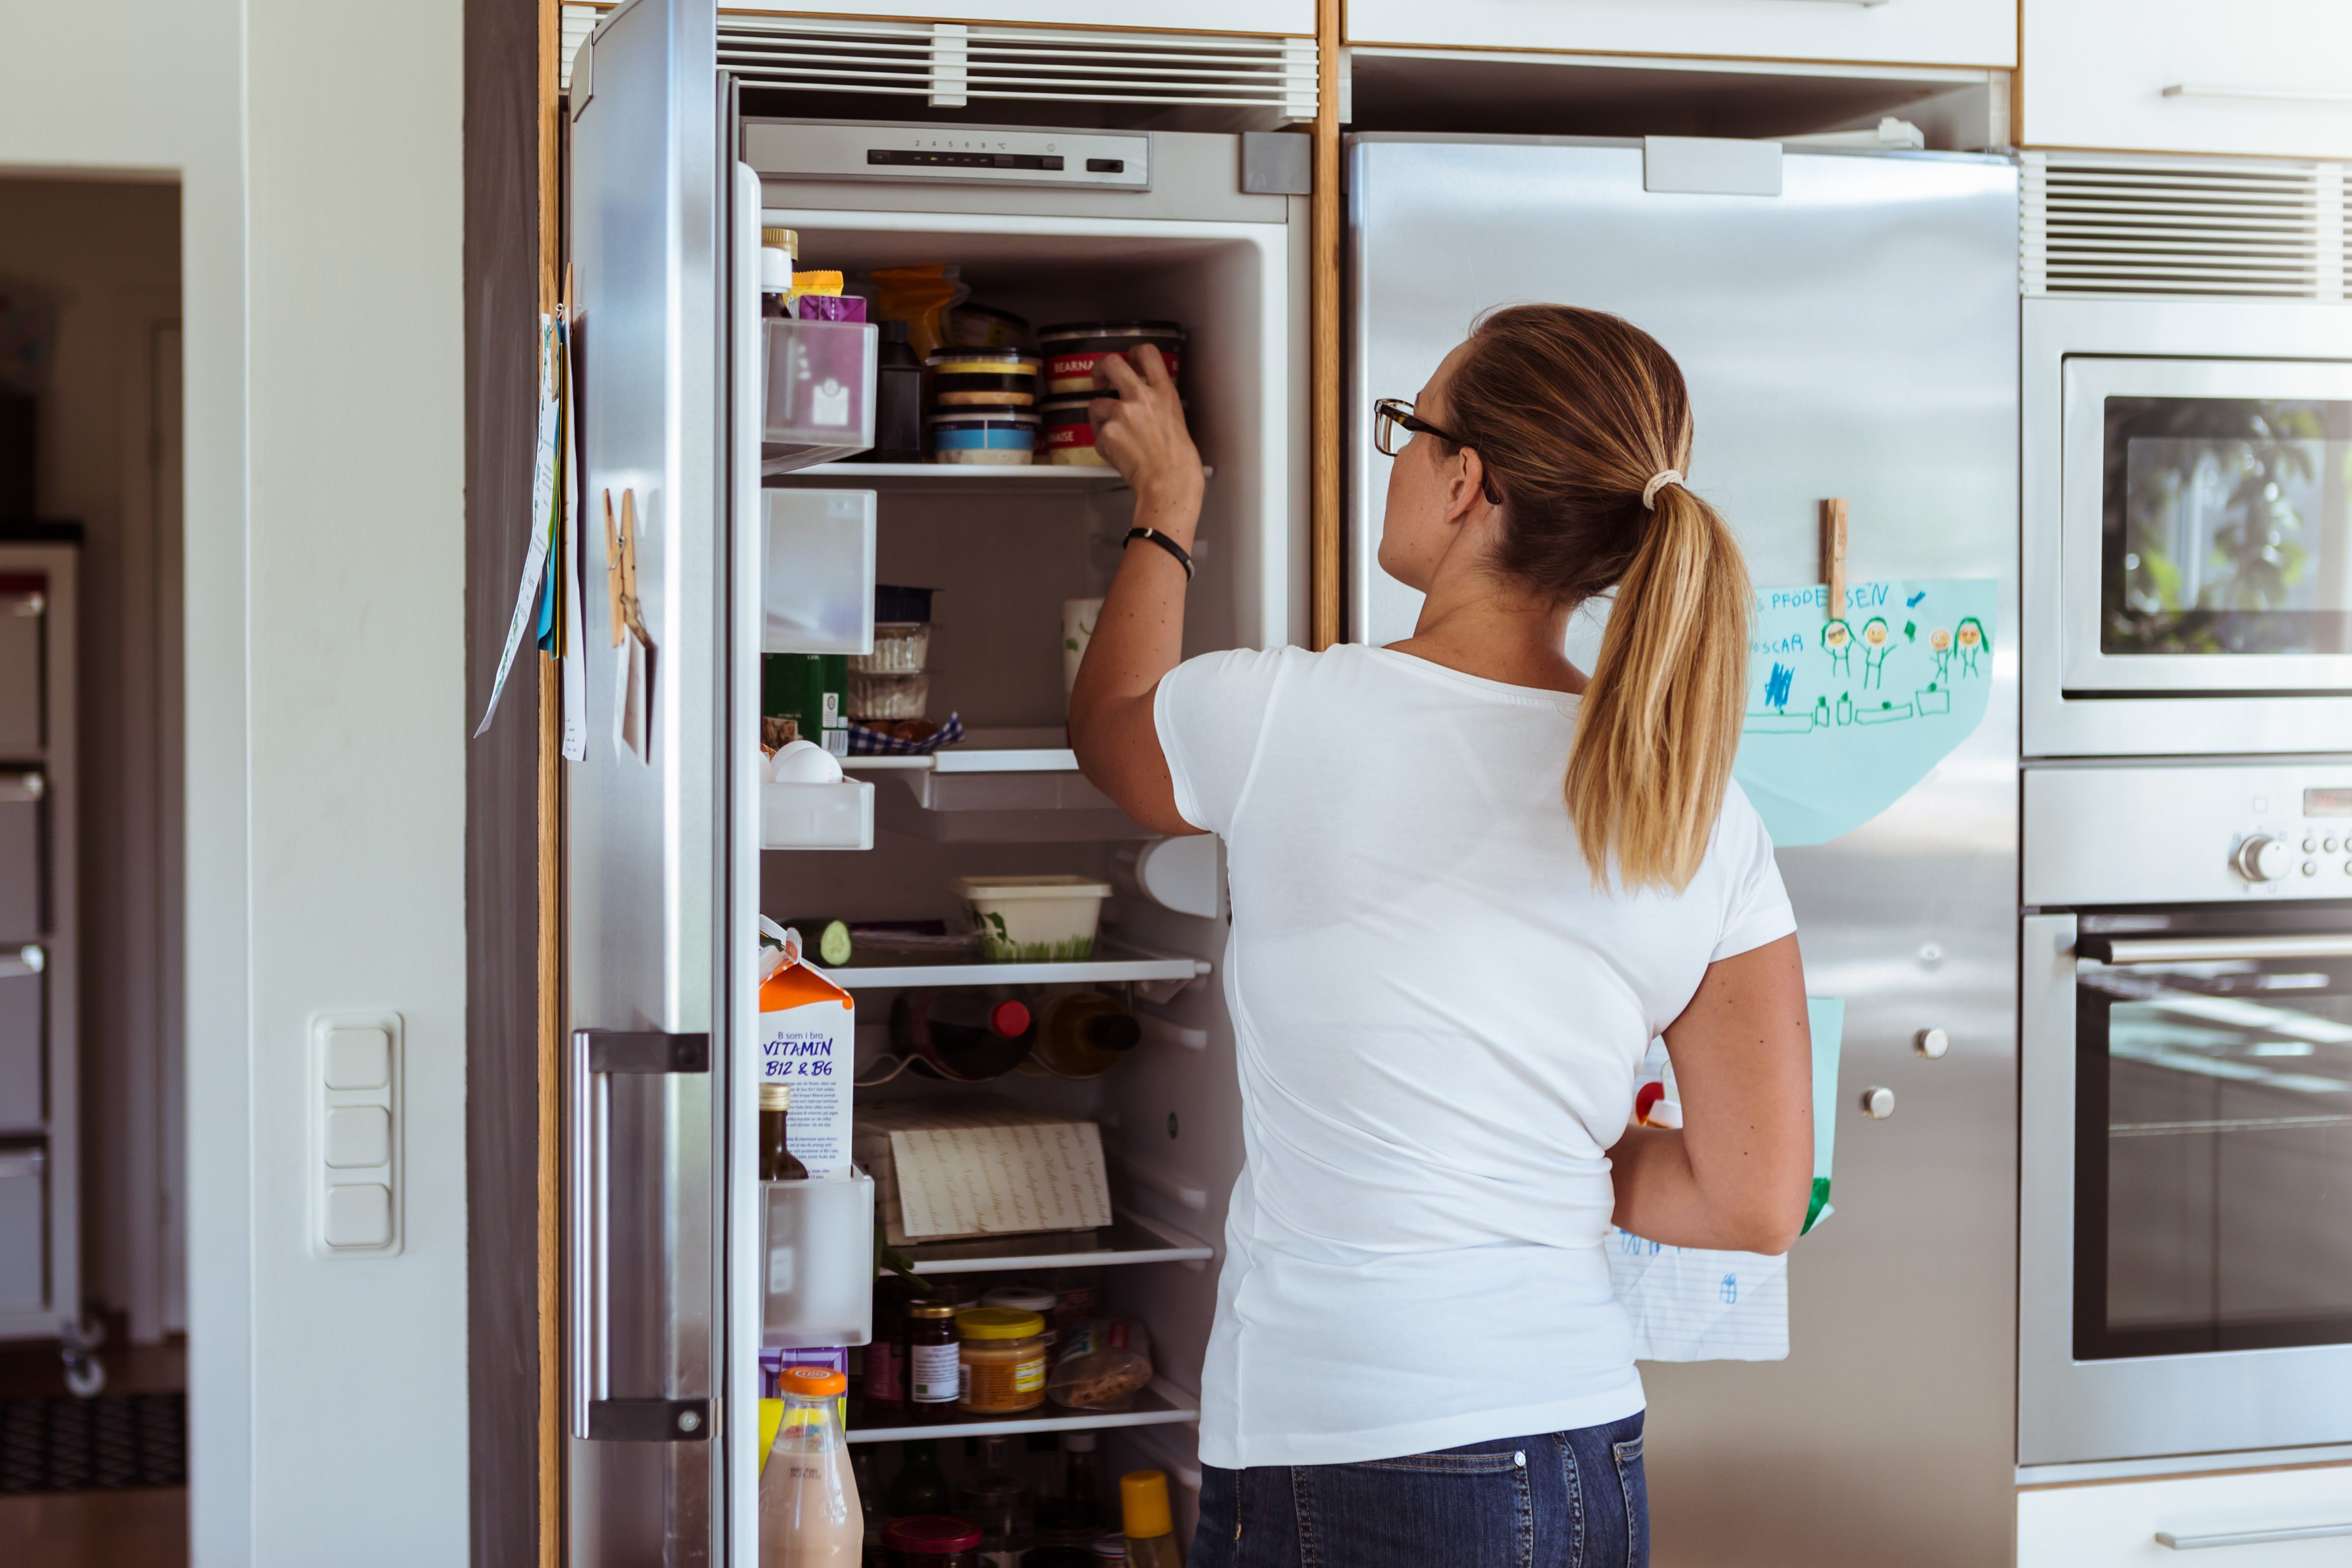 Rear view of woman looking into refrigerator while standing in kitchen